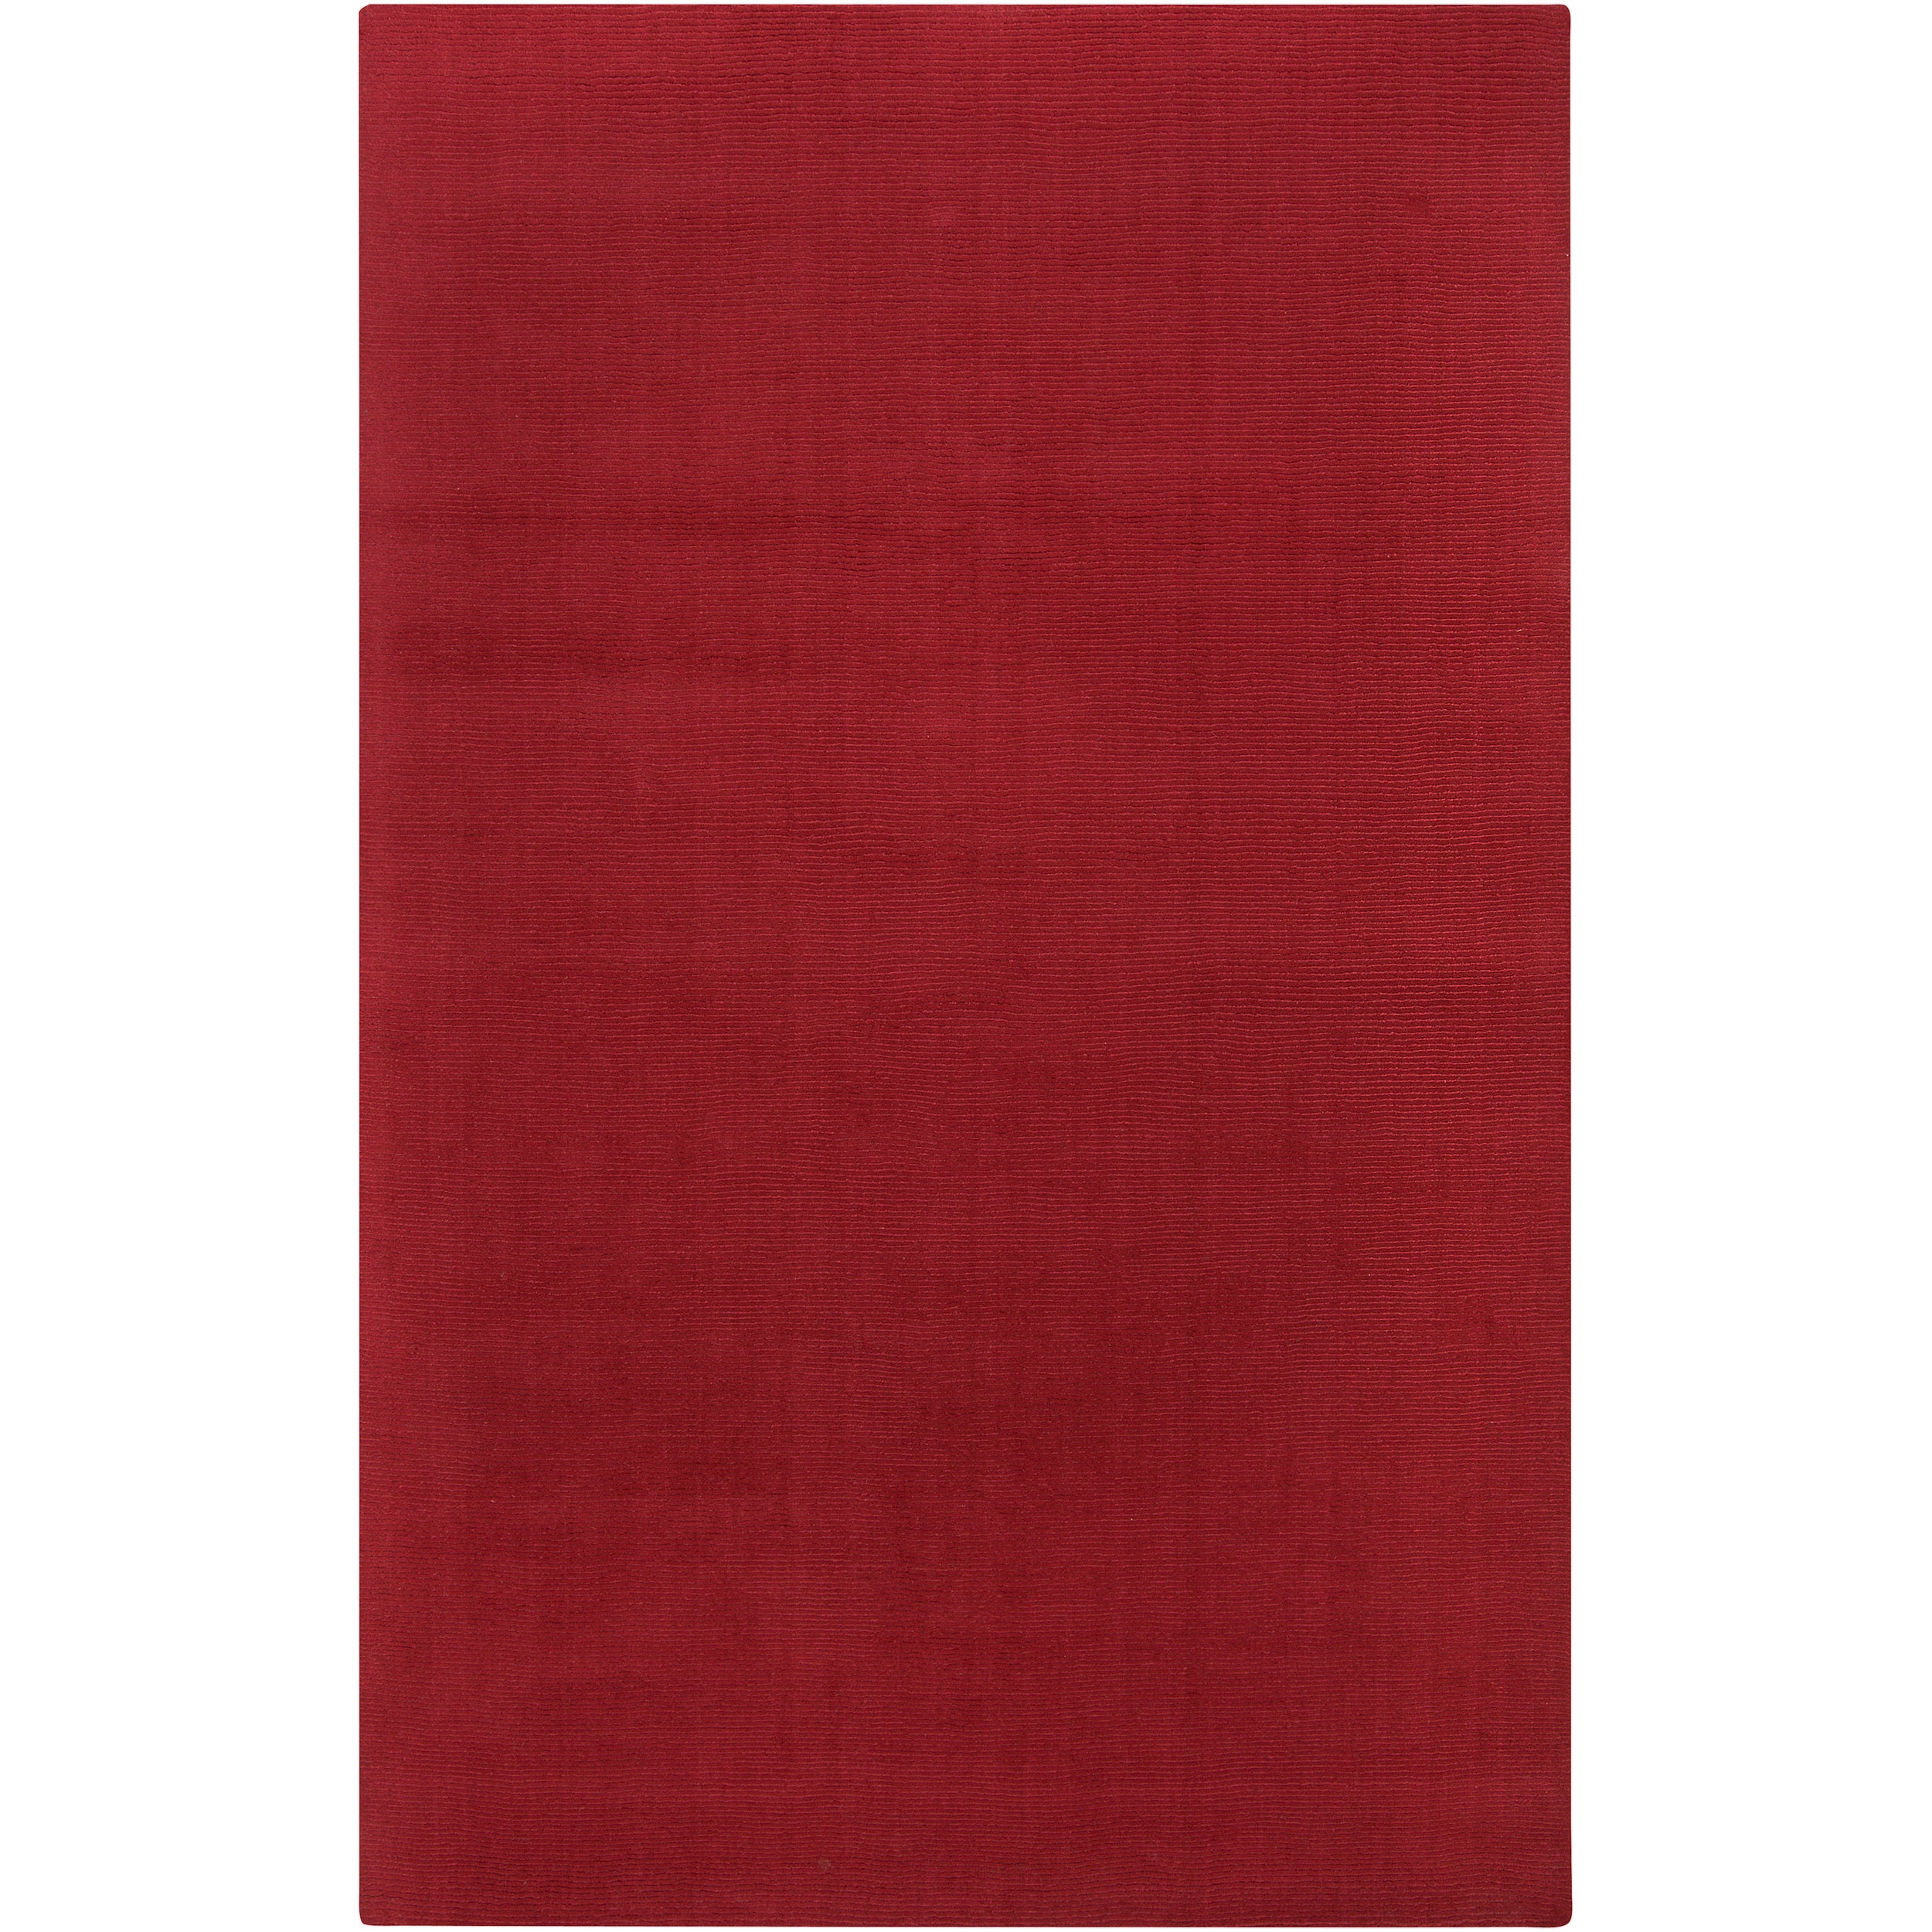 Hand-crafted Red Solid Casual Dronfield Wool Rug (12' x 15')